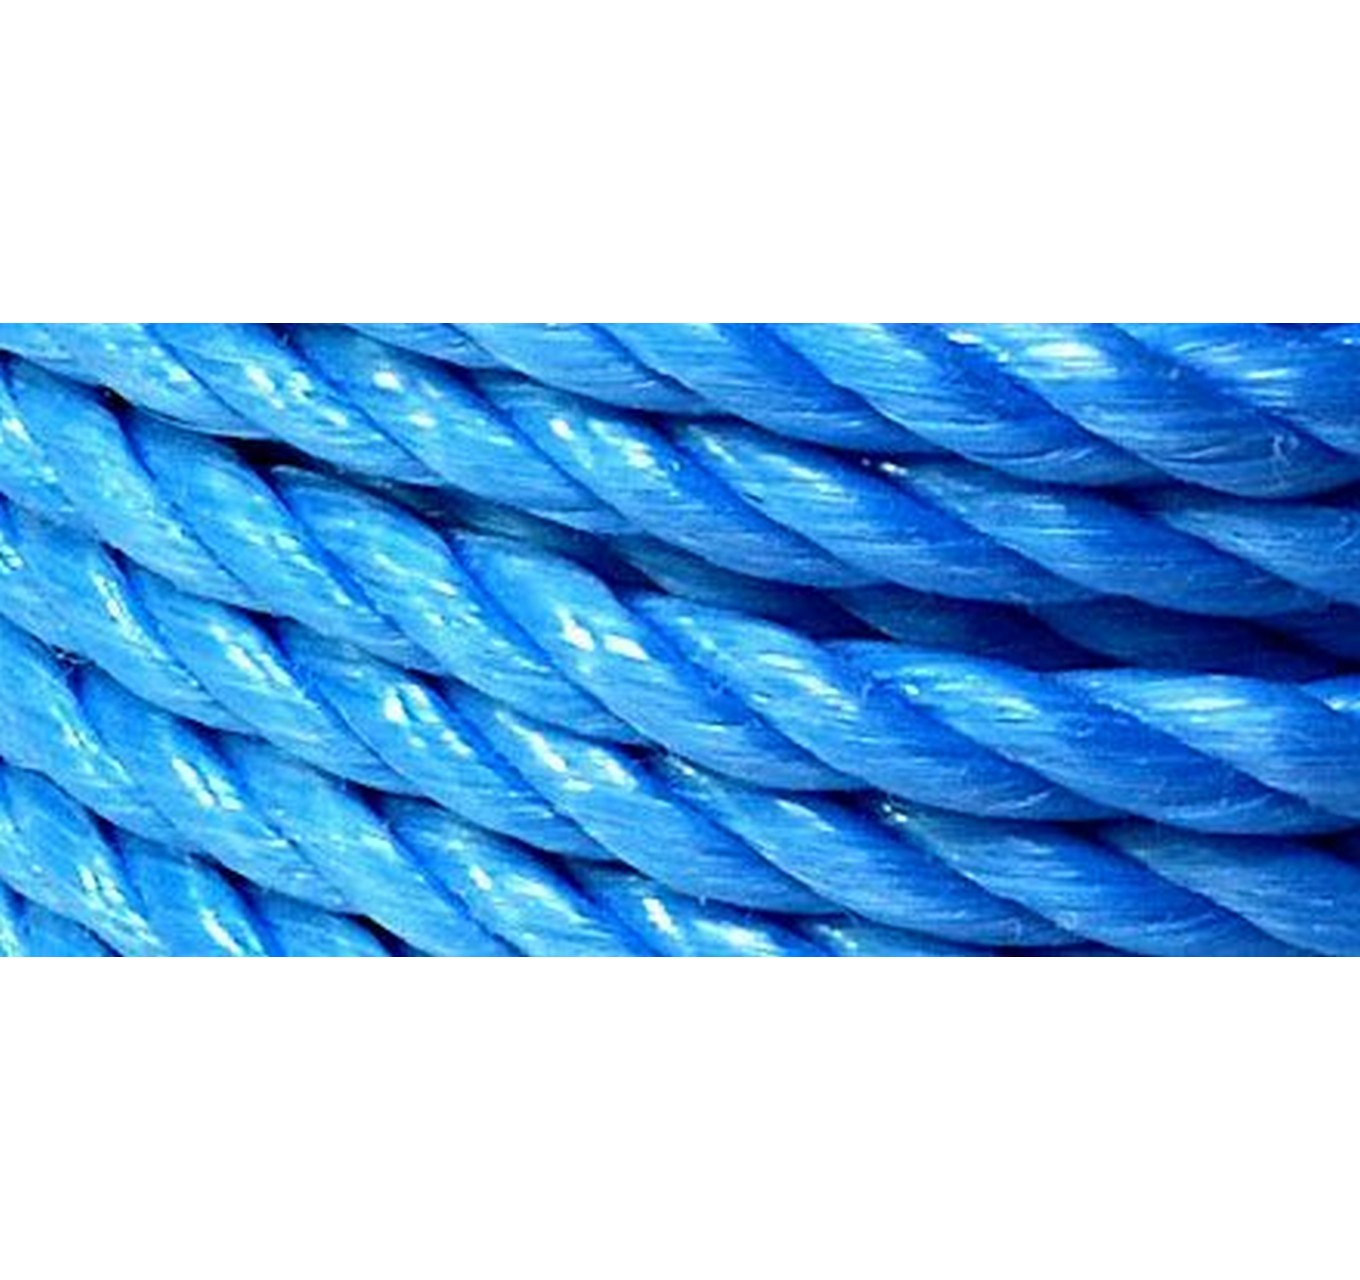 Blue Poly Rope 12mm x 27m